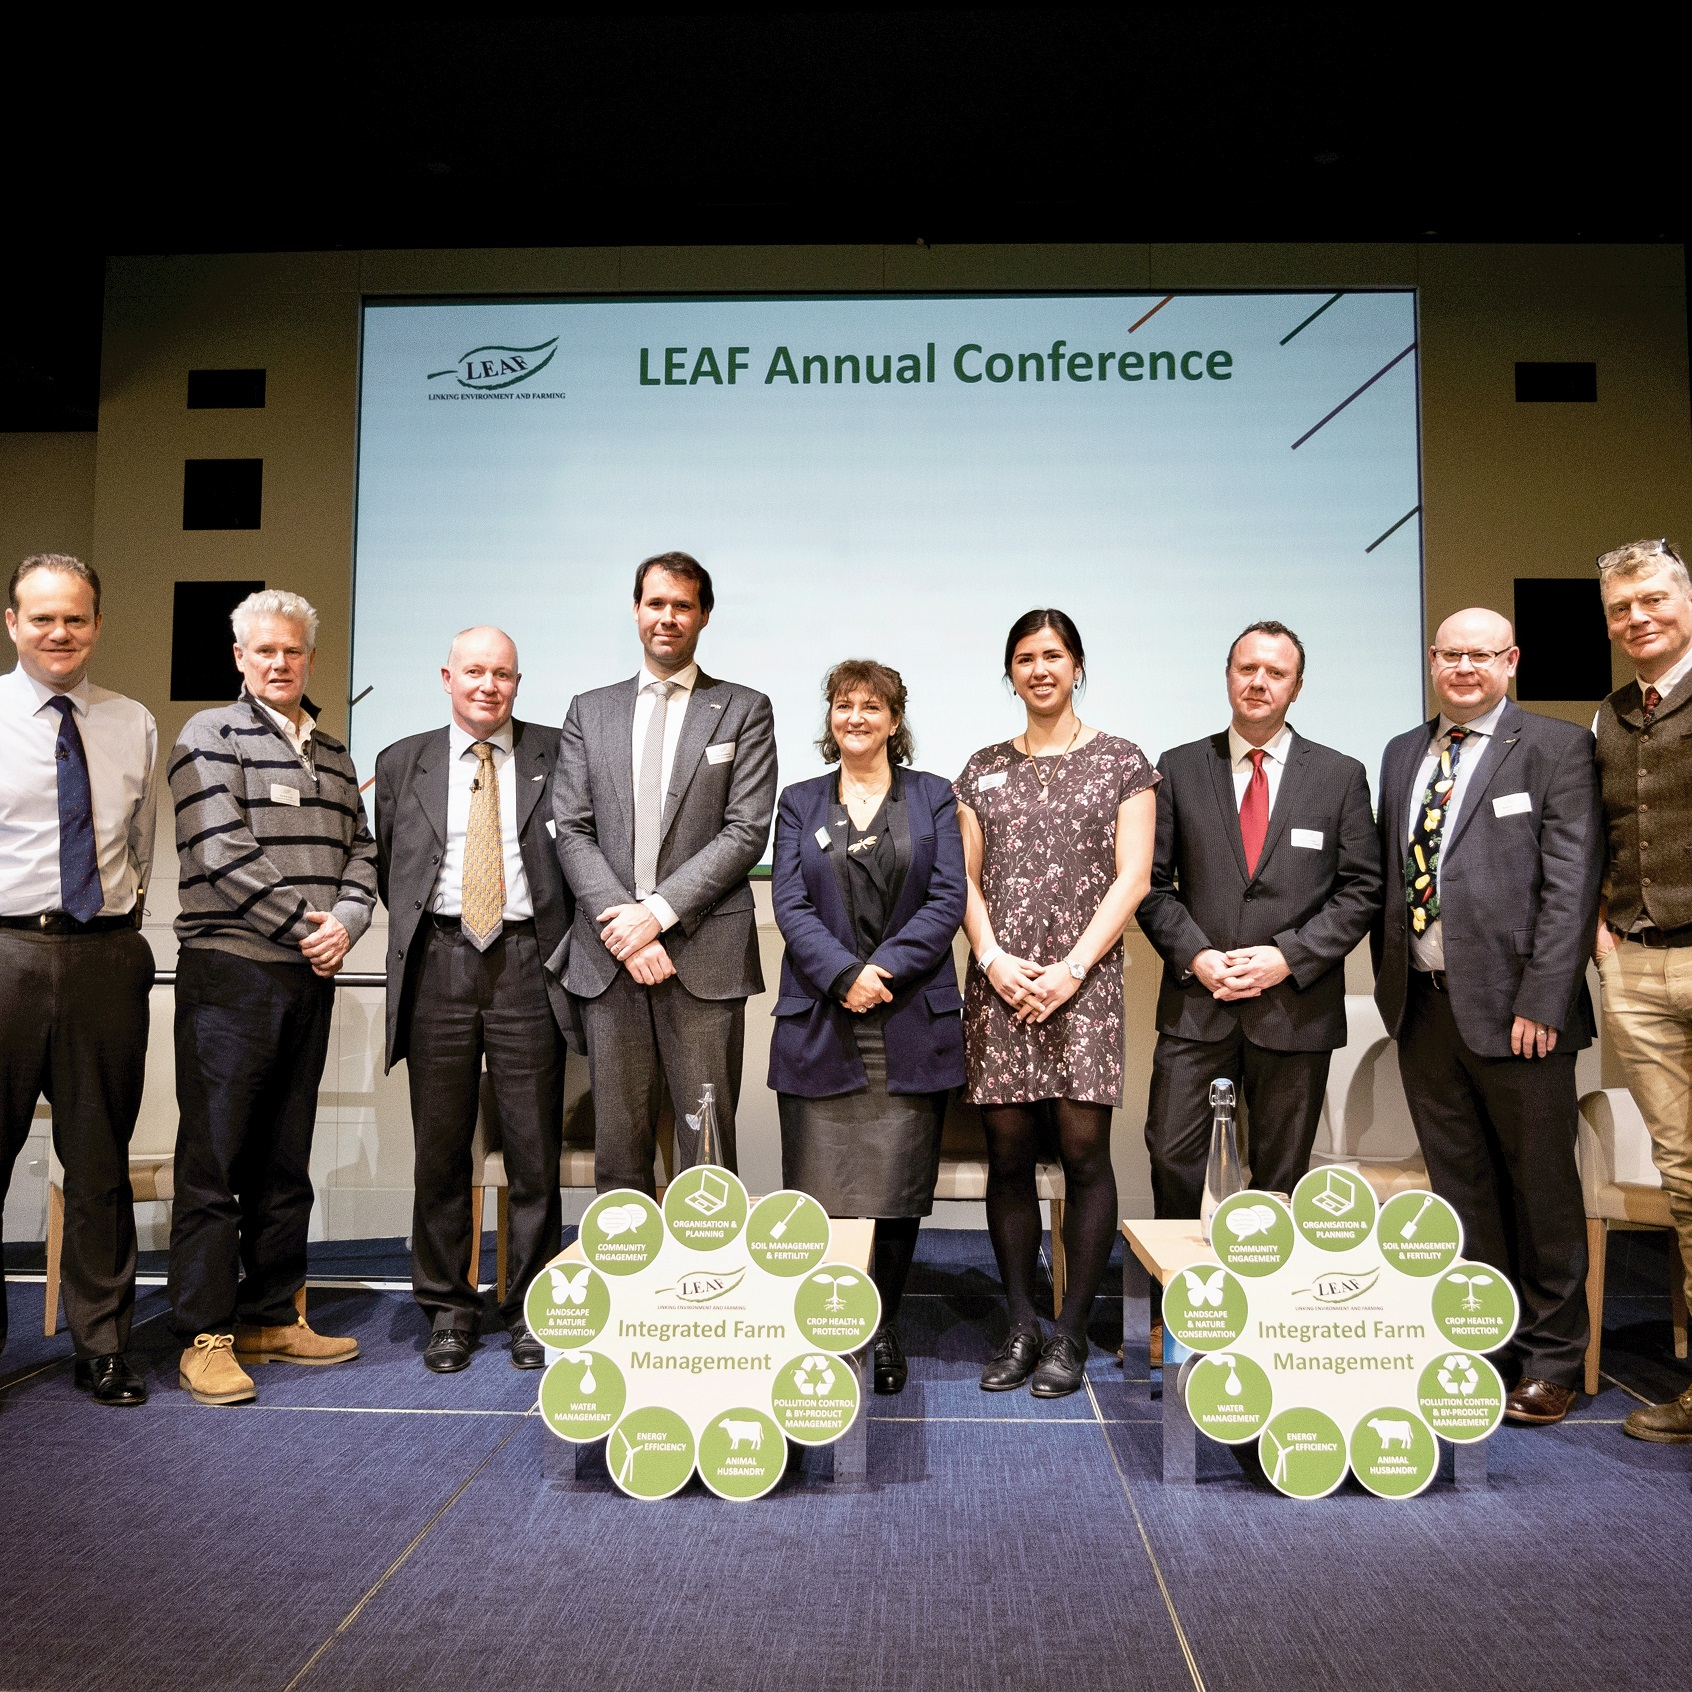 LEAF Conference 2019 group of speakers